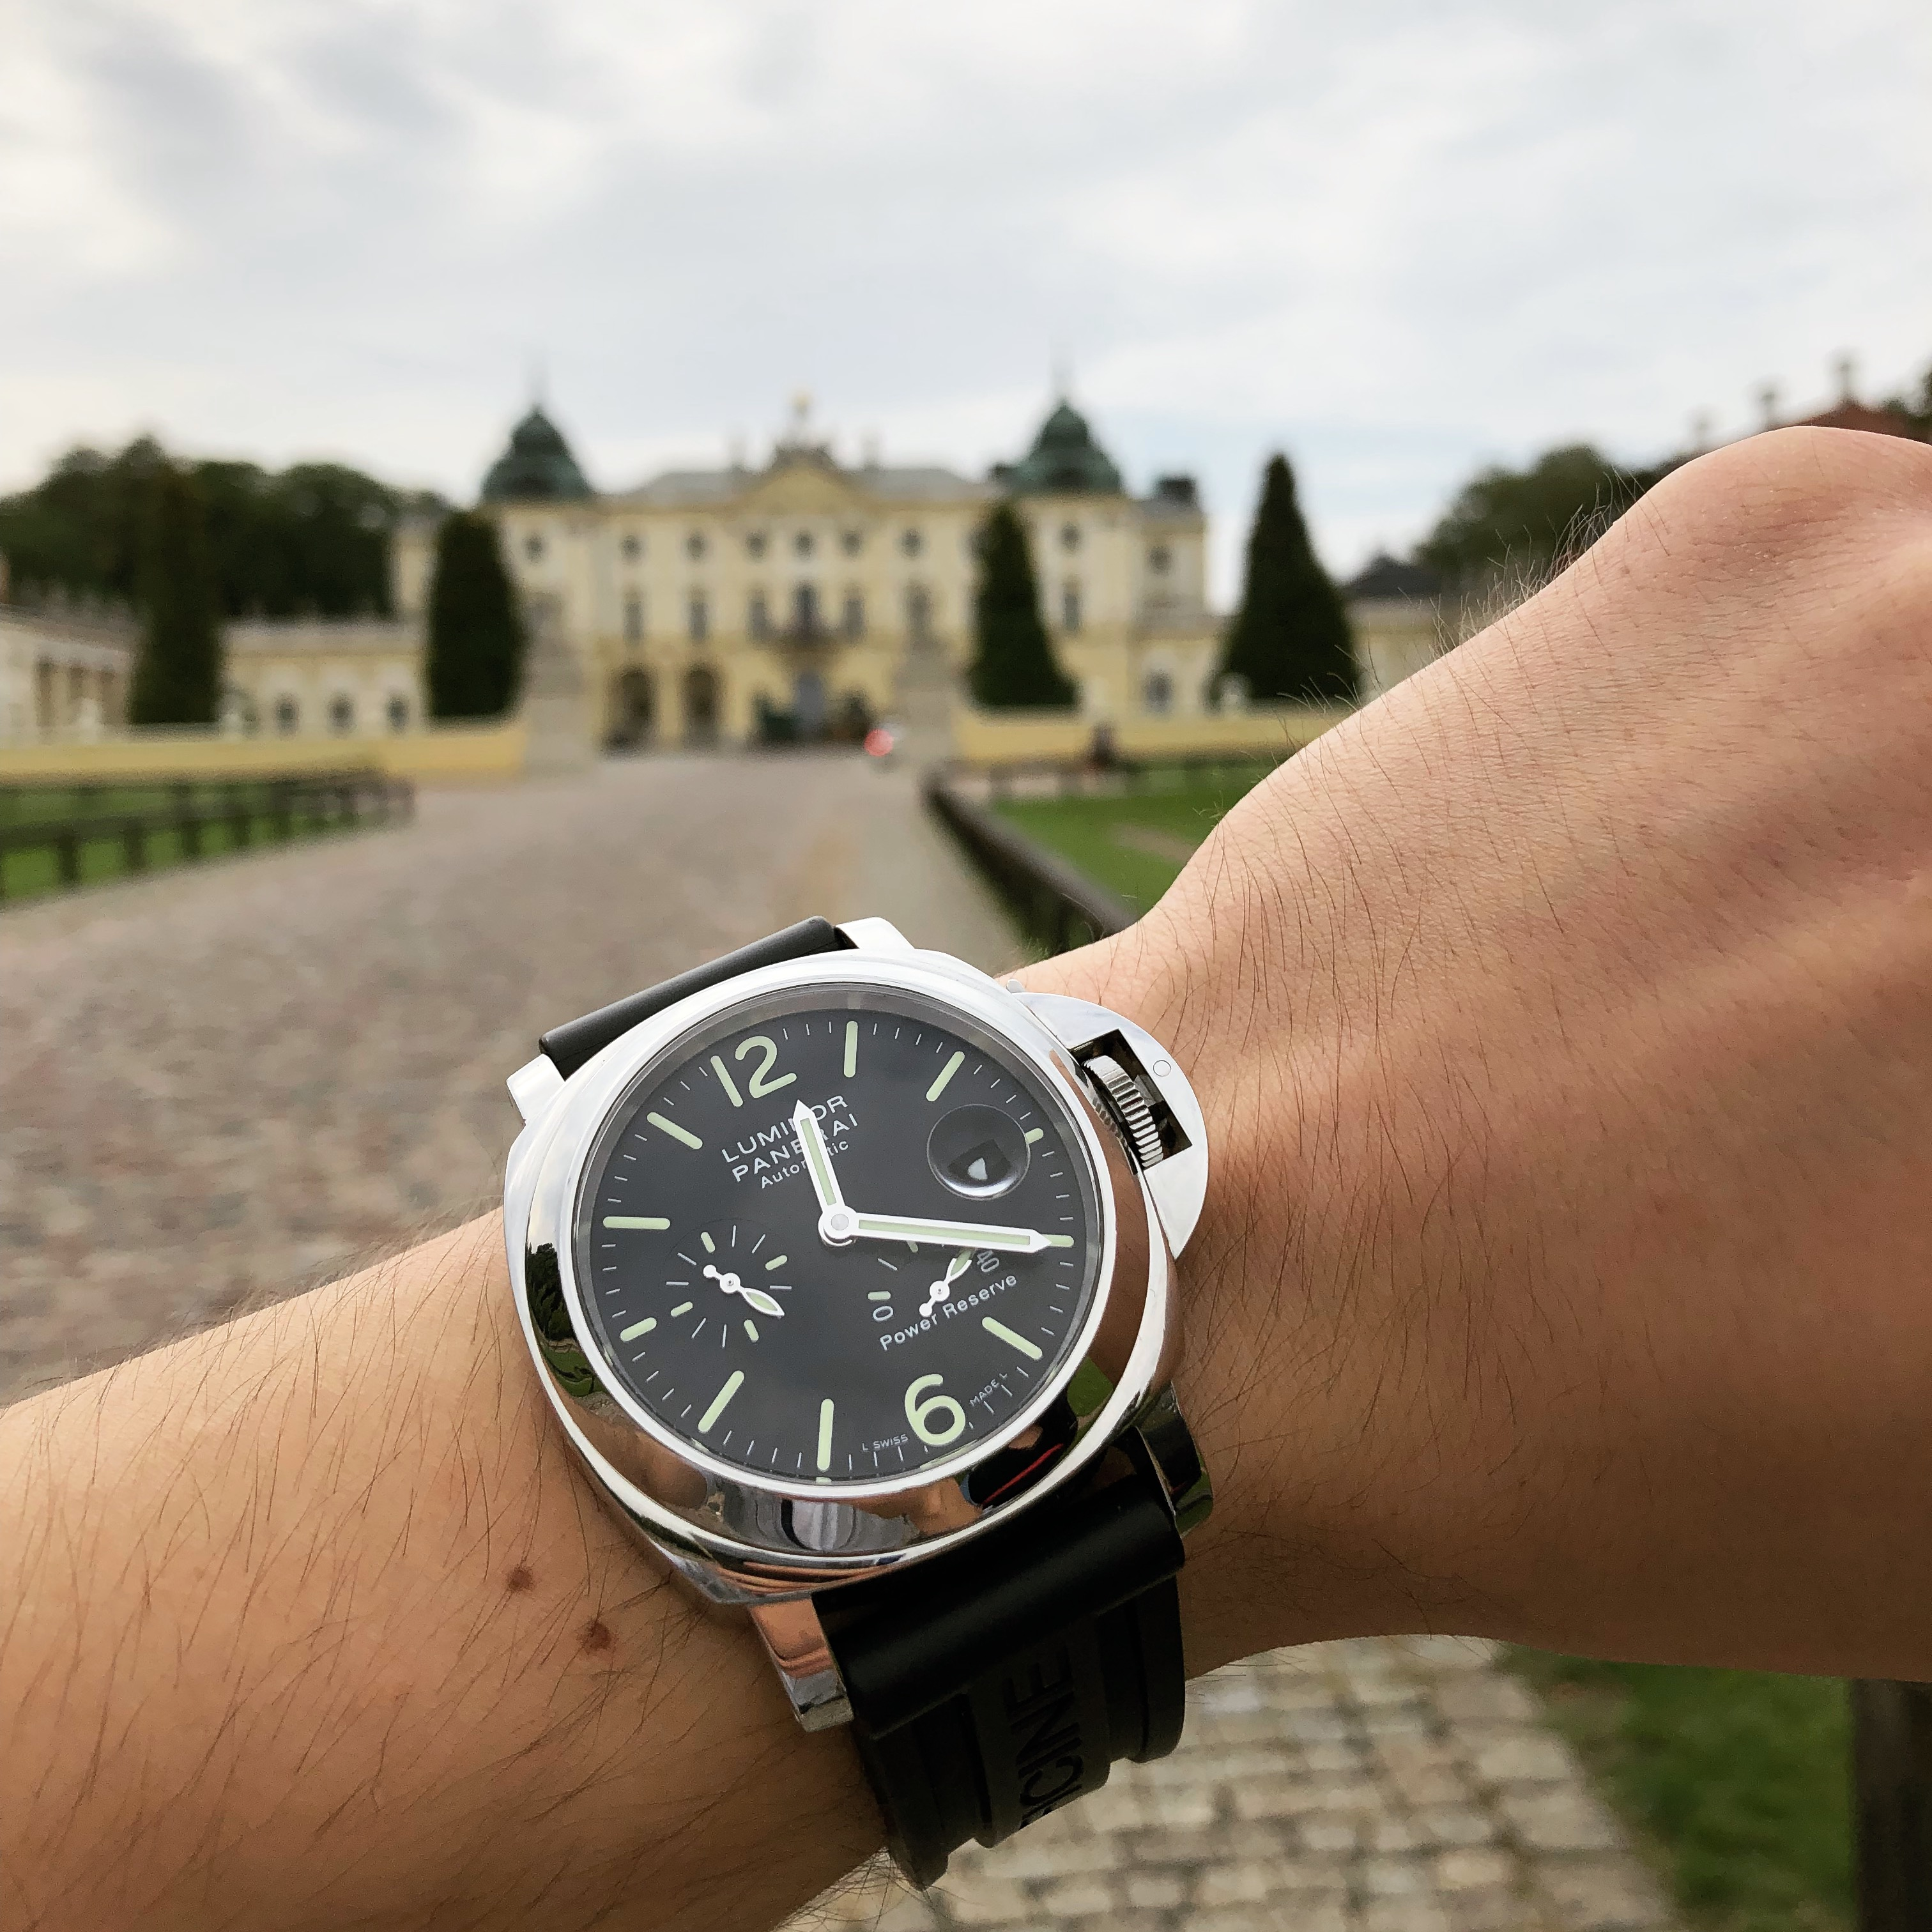 Part 2 Bialystok: Exploring Poland With The Panerai Luminor PAM00090